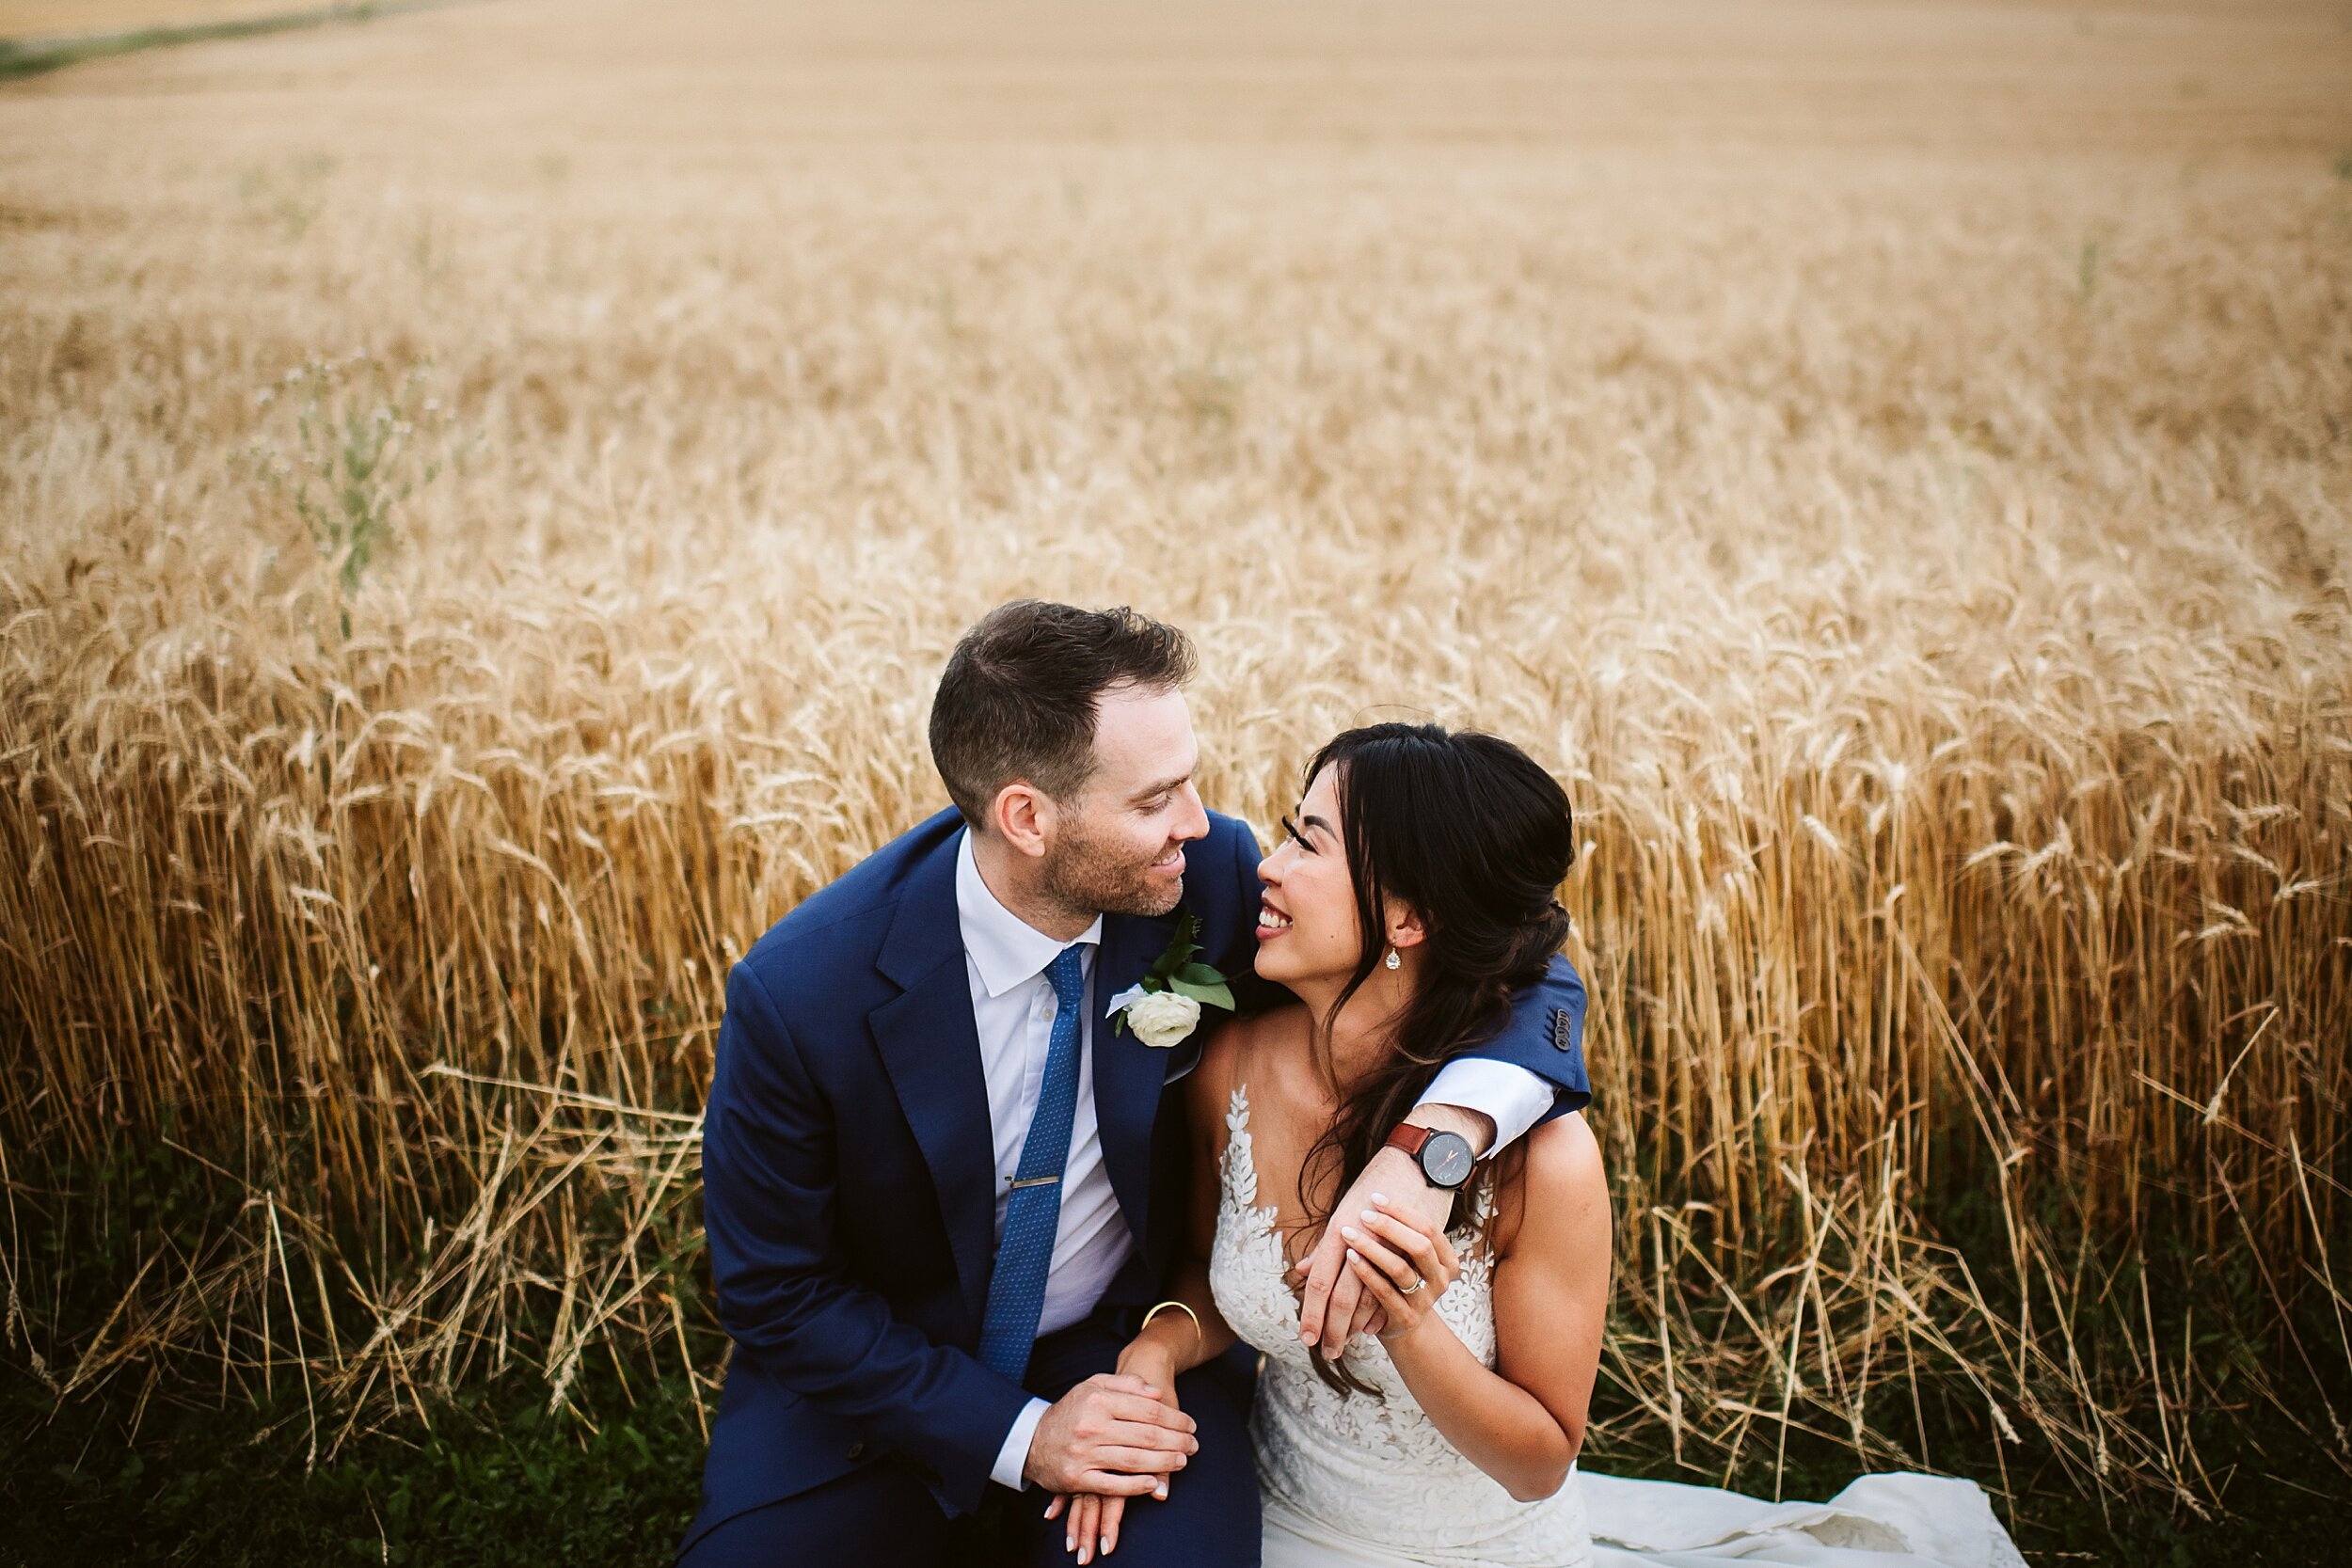 Glen_Drummon_Farm_Wedding_Toronto_Photographers_Fox_Photography_Dyments_0070.jpg